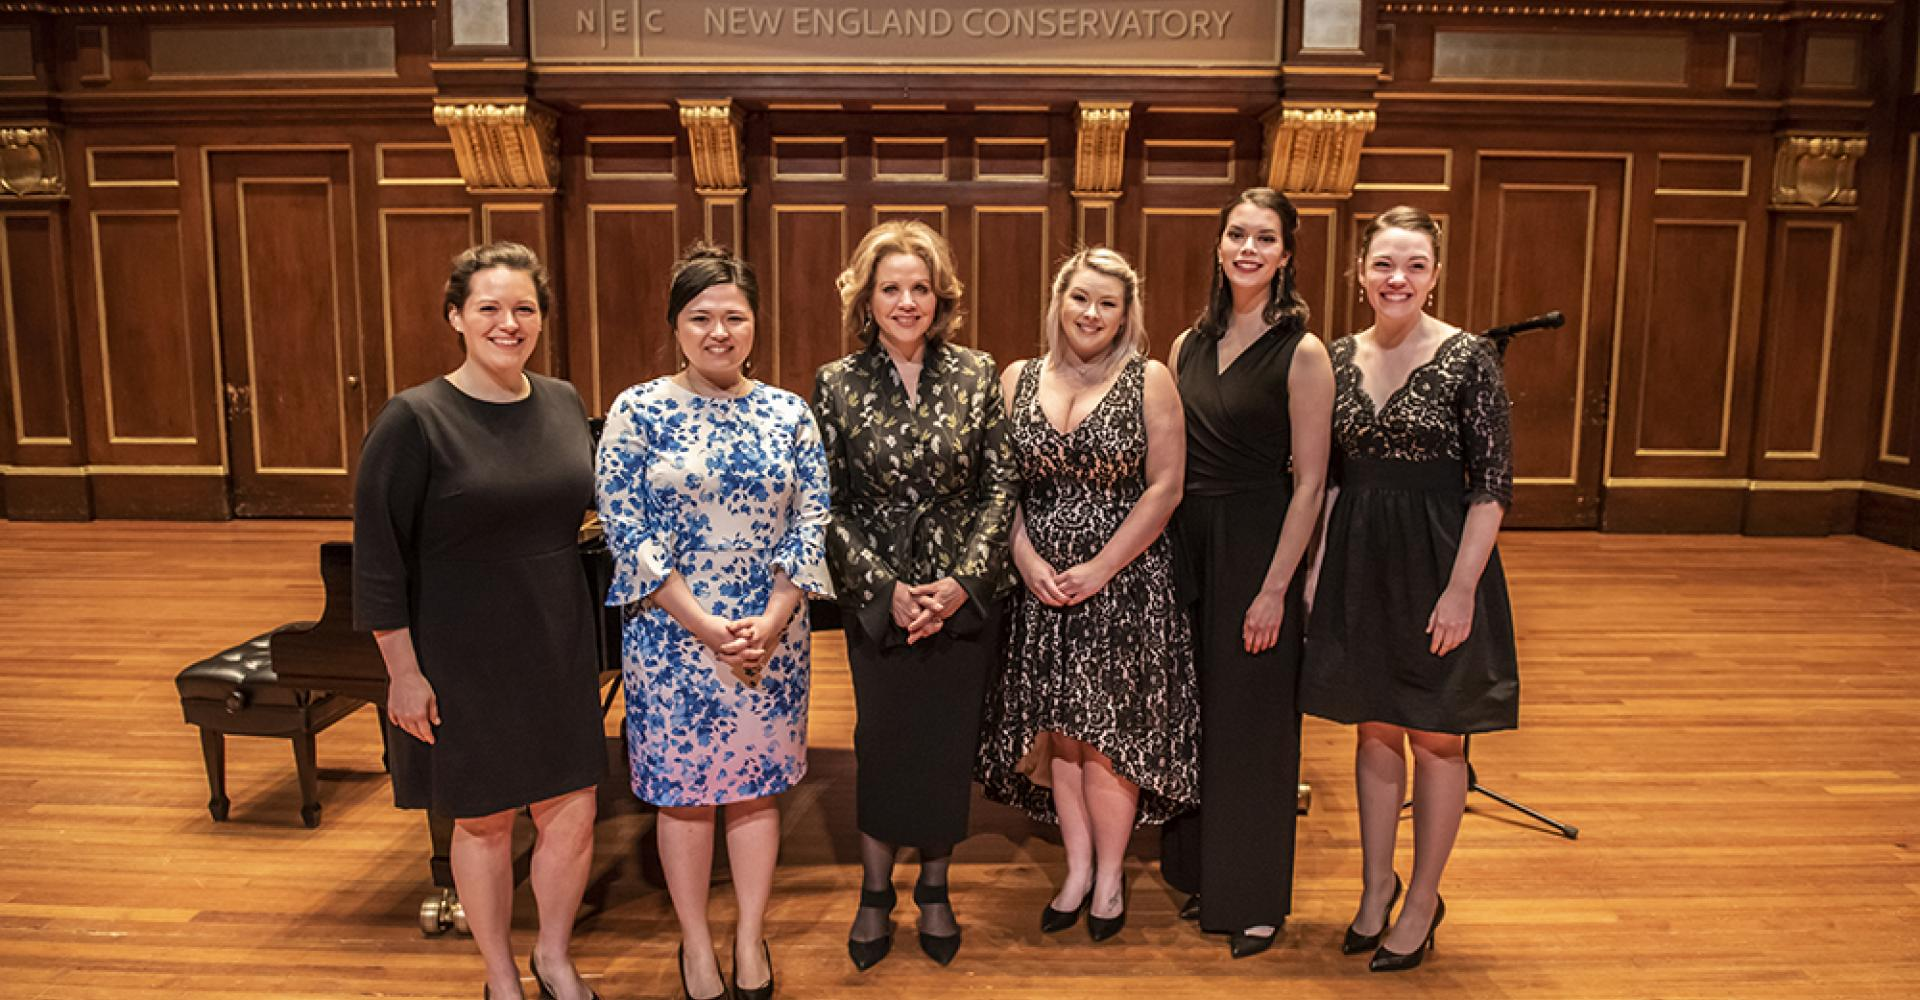 Renee Fleming with a group of students from her masterclass in jordan hall